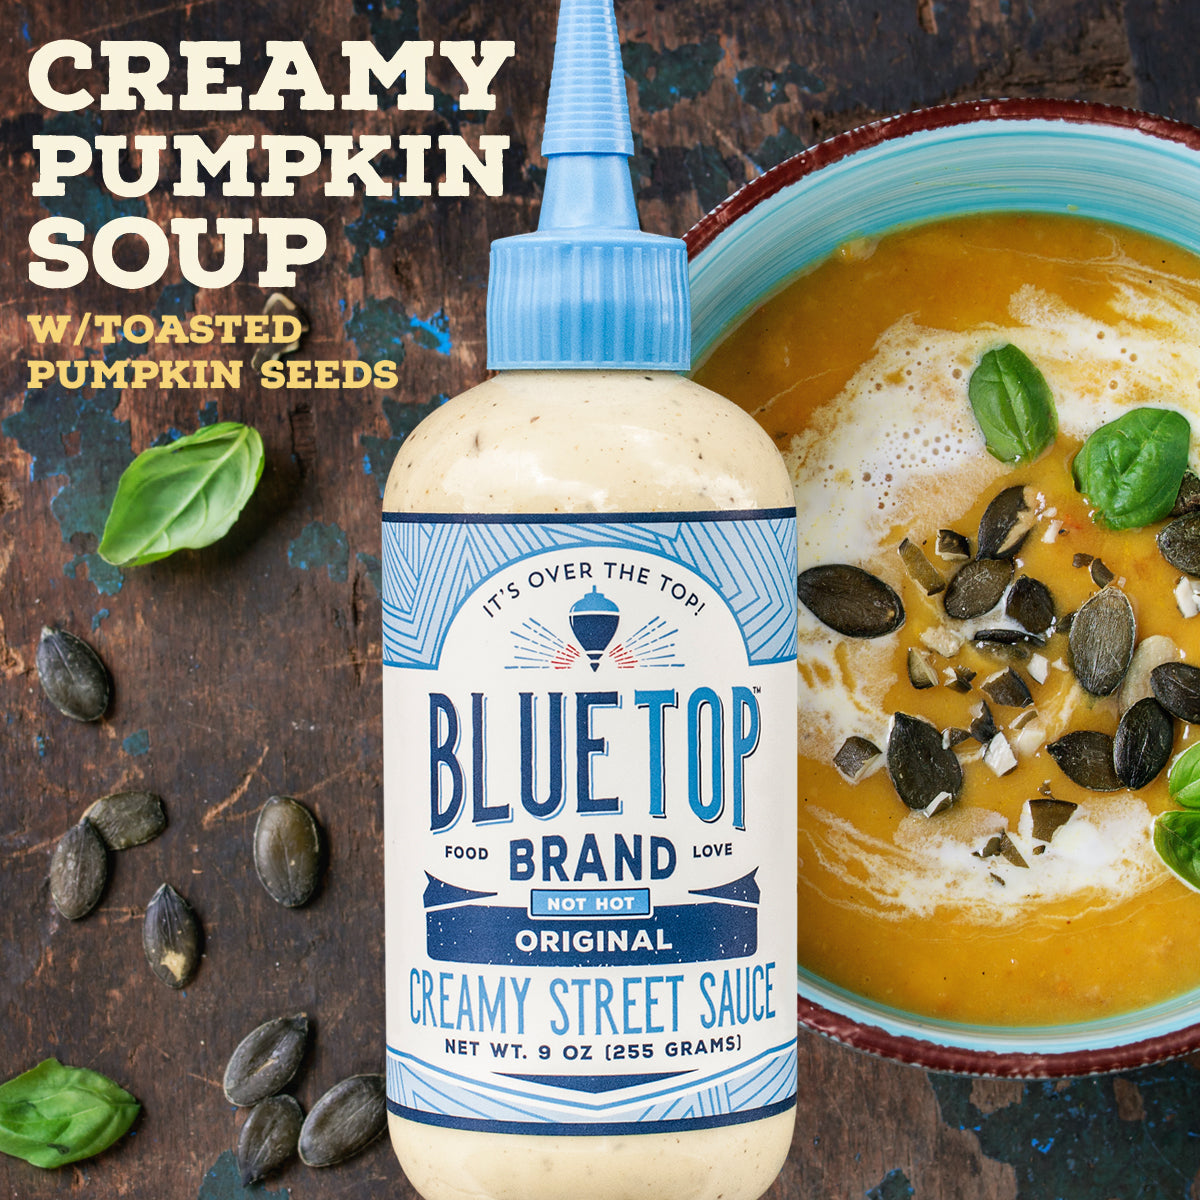 Creamy Blue Top Pumpkin Soup